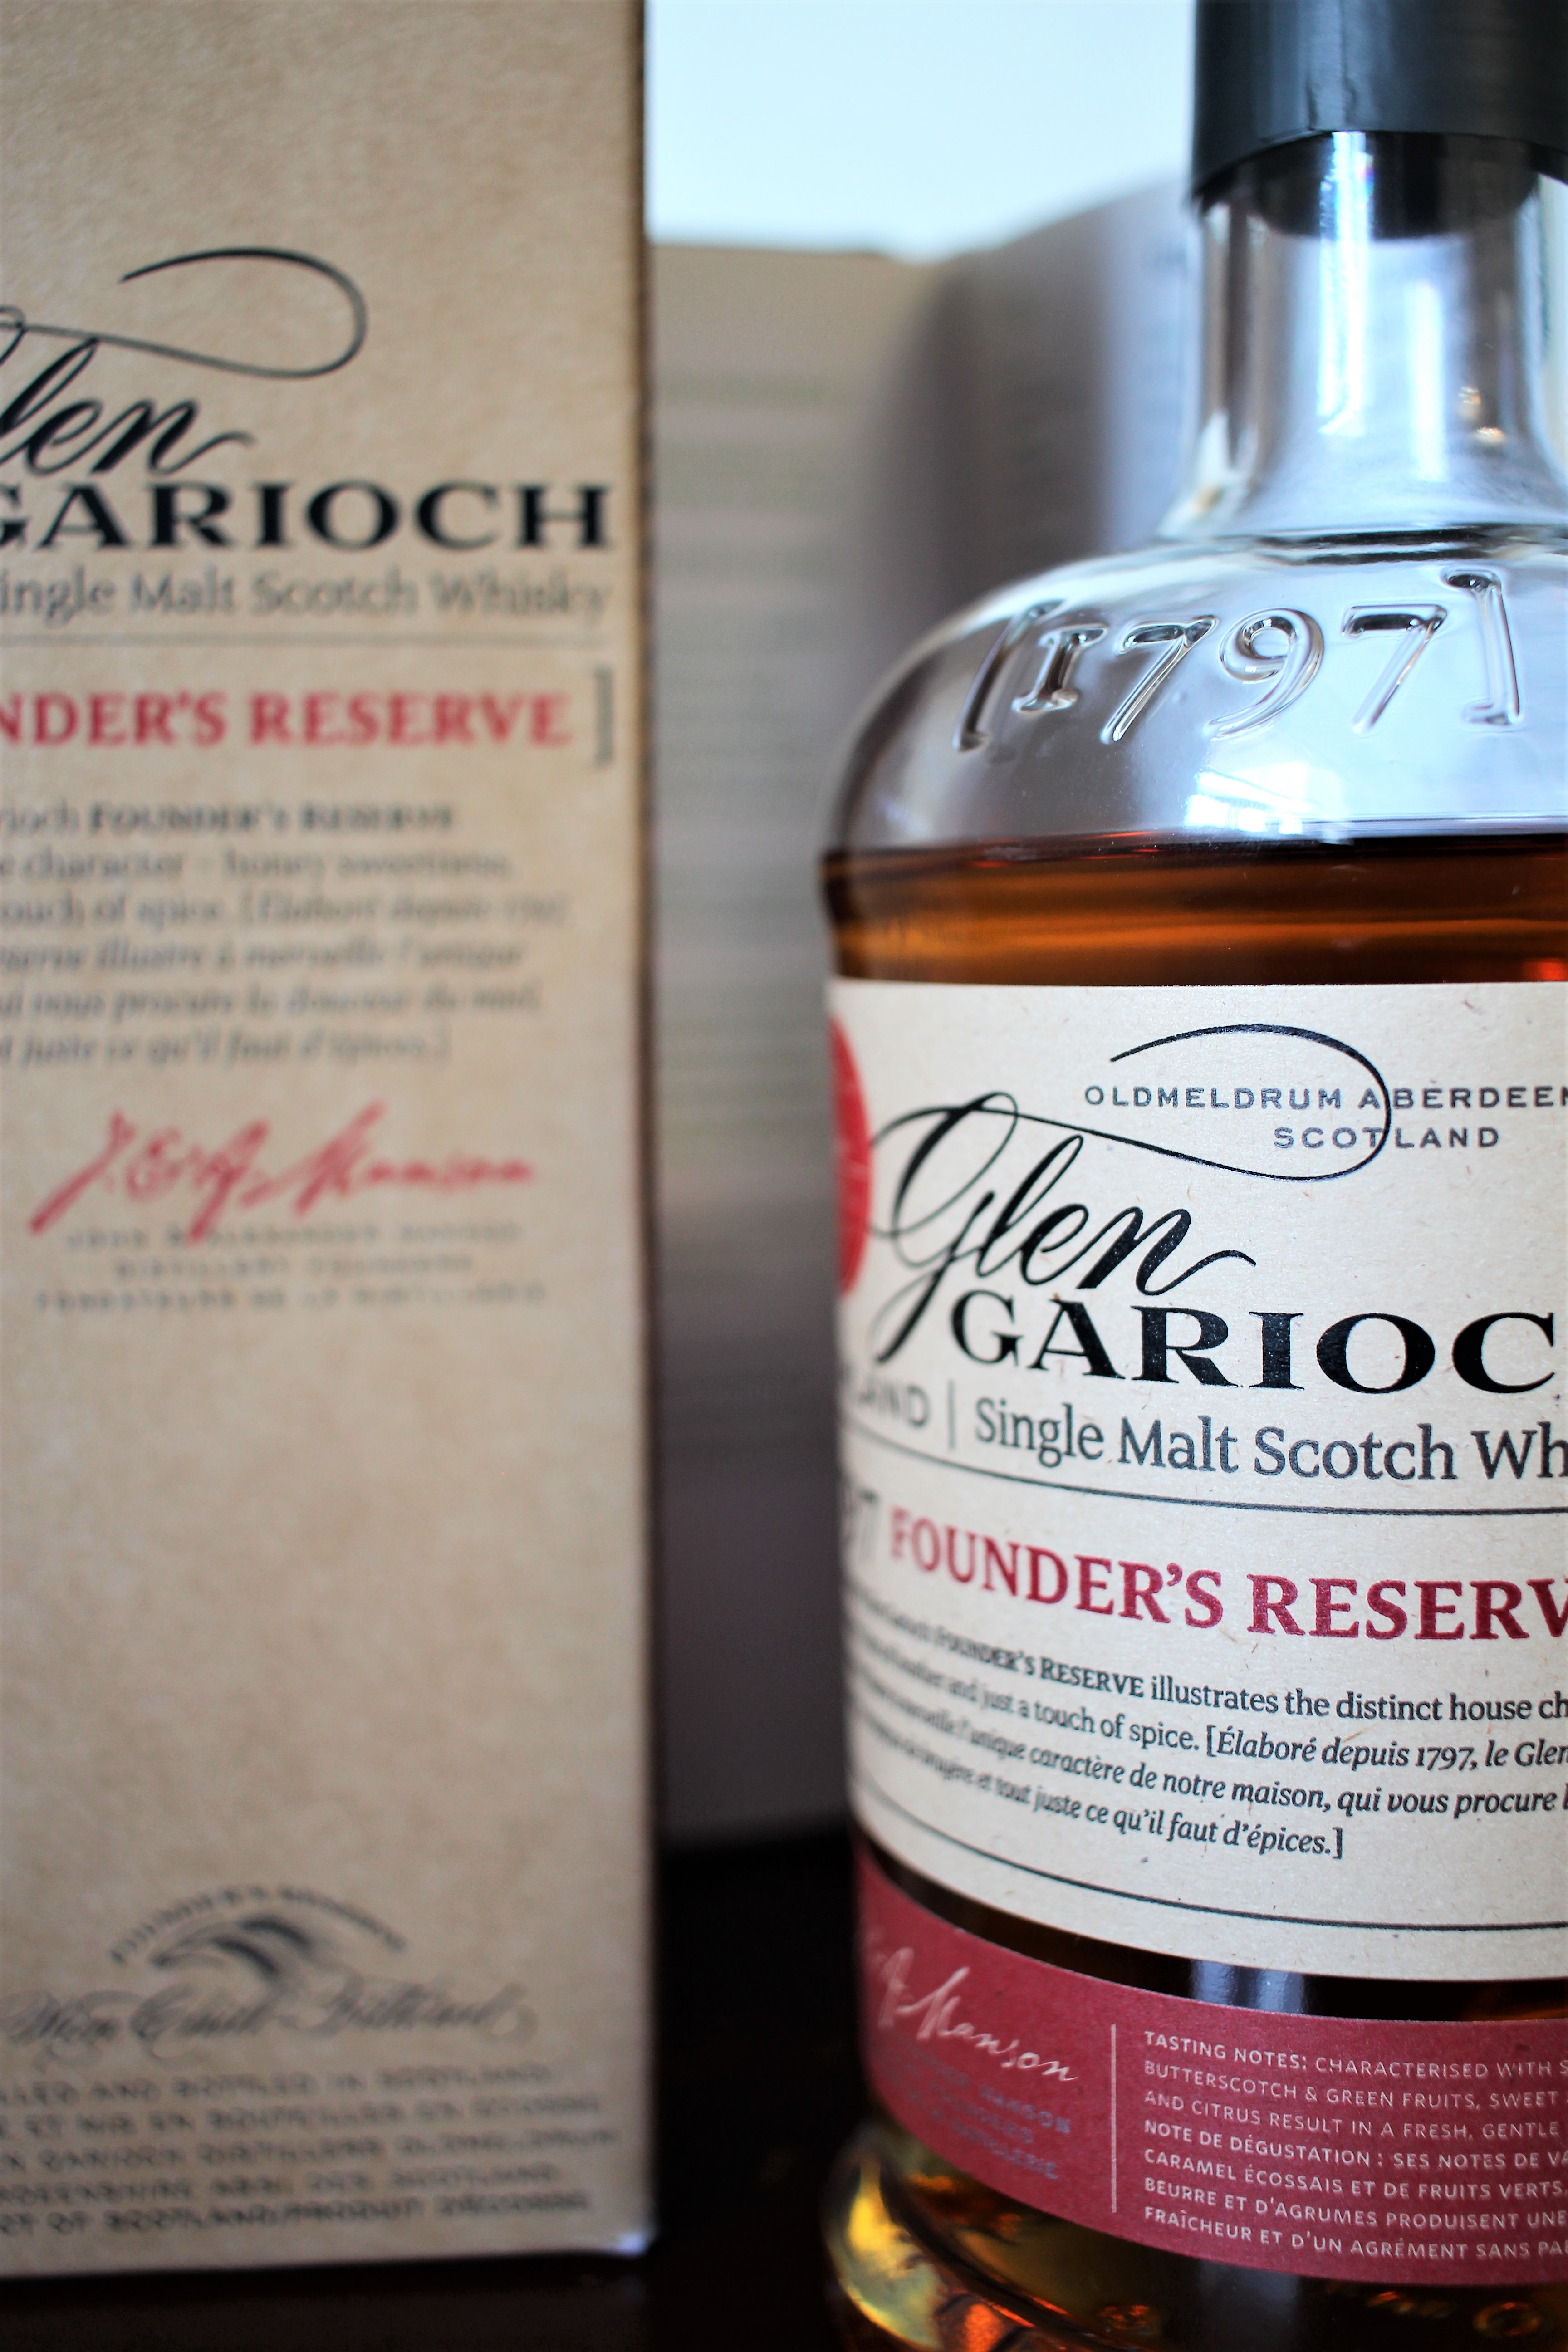 Glen Garioch Founder's Reserve with Dan & Goran